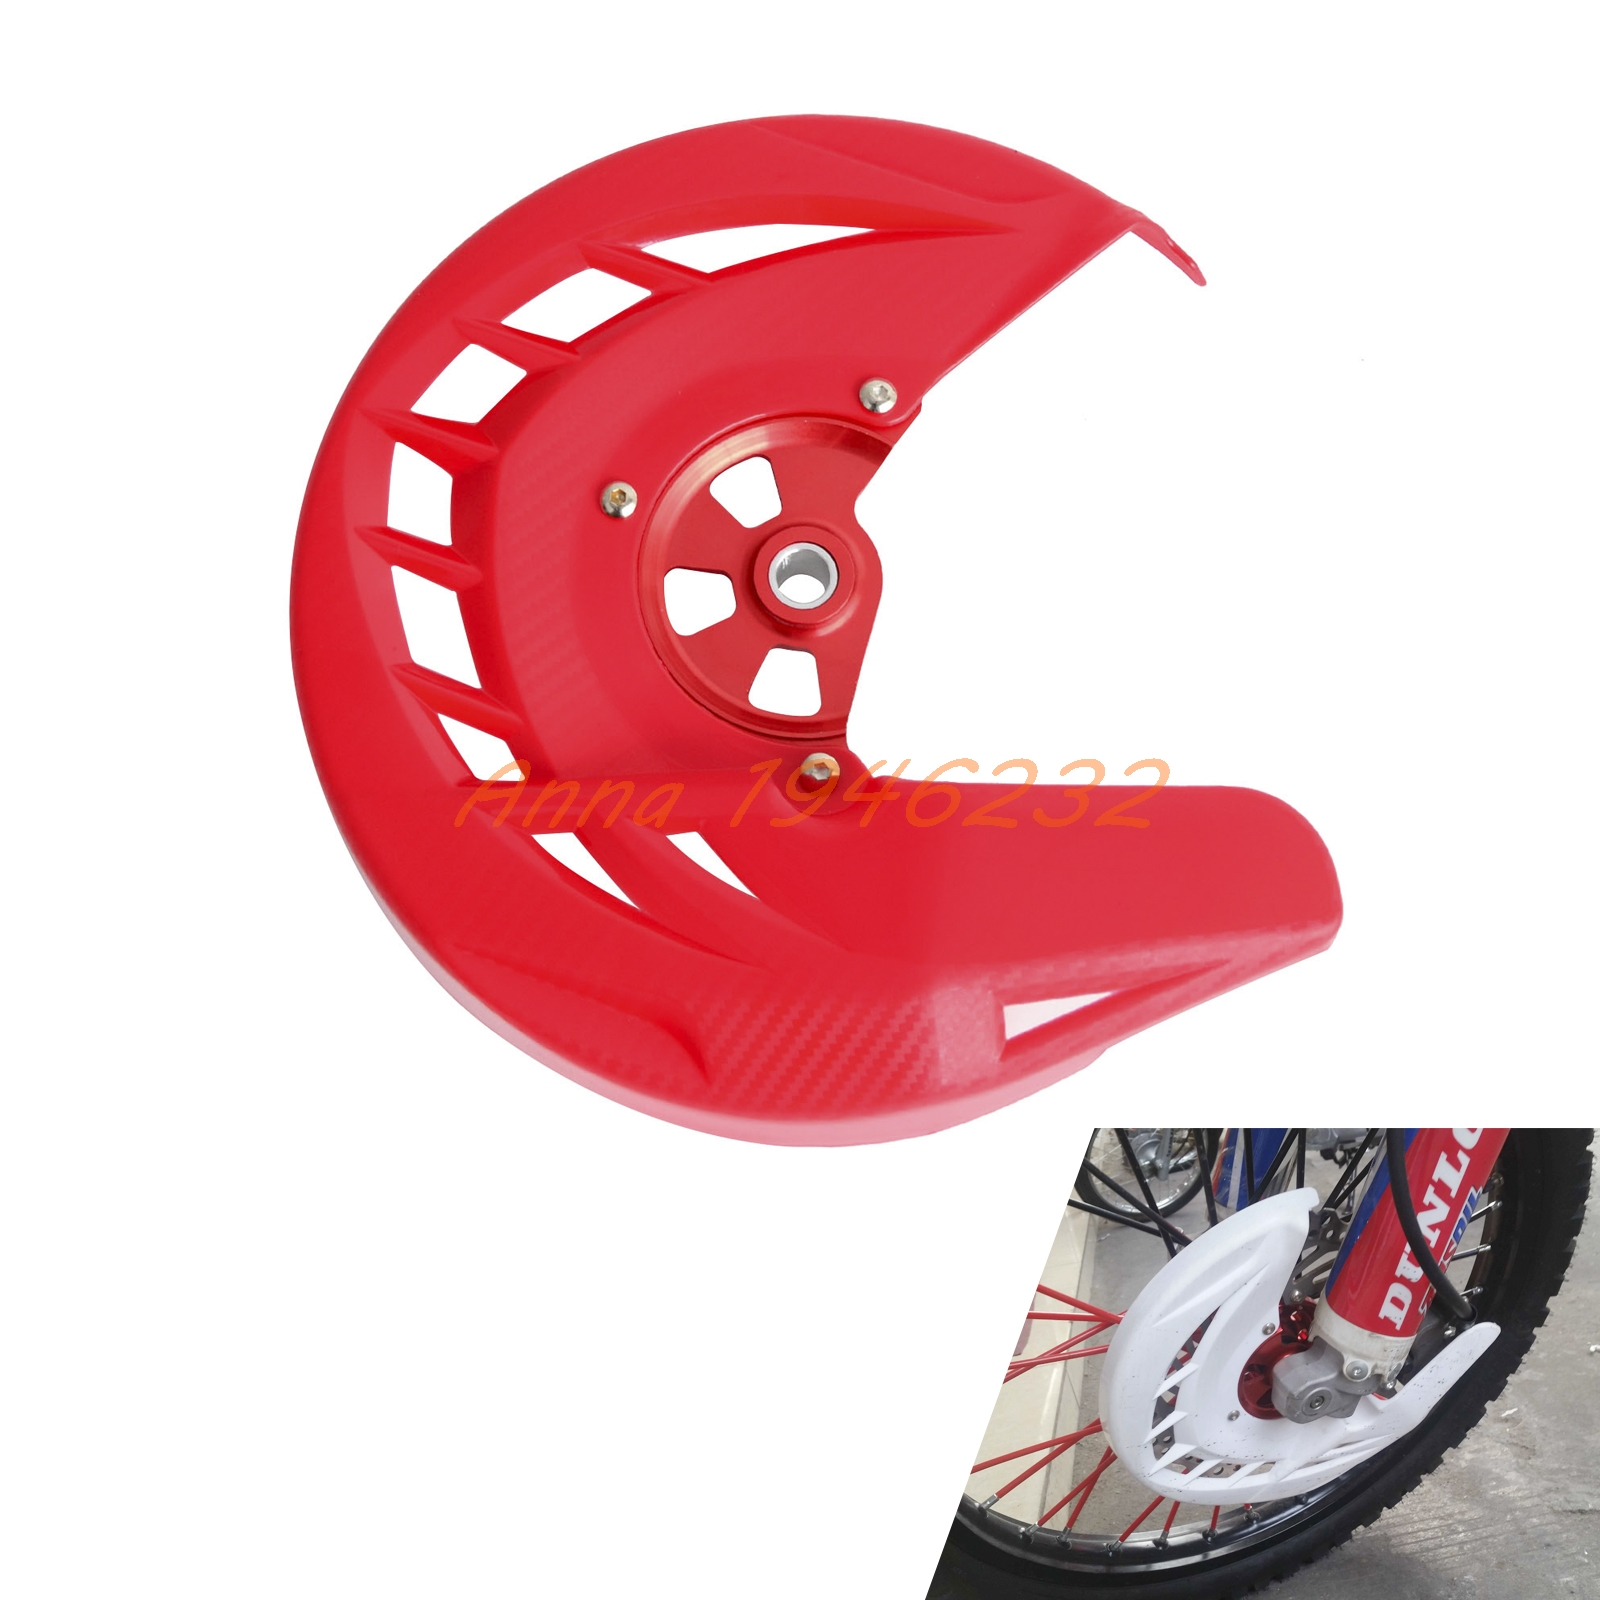 Red Front Brake Disc Rotor Guard Cover For Honda CRF250L CRF250M 2012 2013 2014 2015 keoghs motorcycle brake disc brake rotor floating 260mm 82mm diameter cnc for yamaha scooter bws cygnus front disc replace